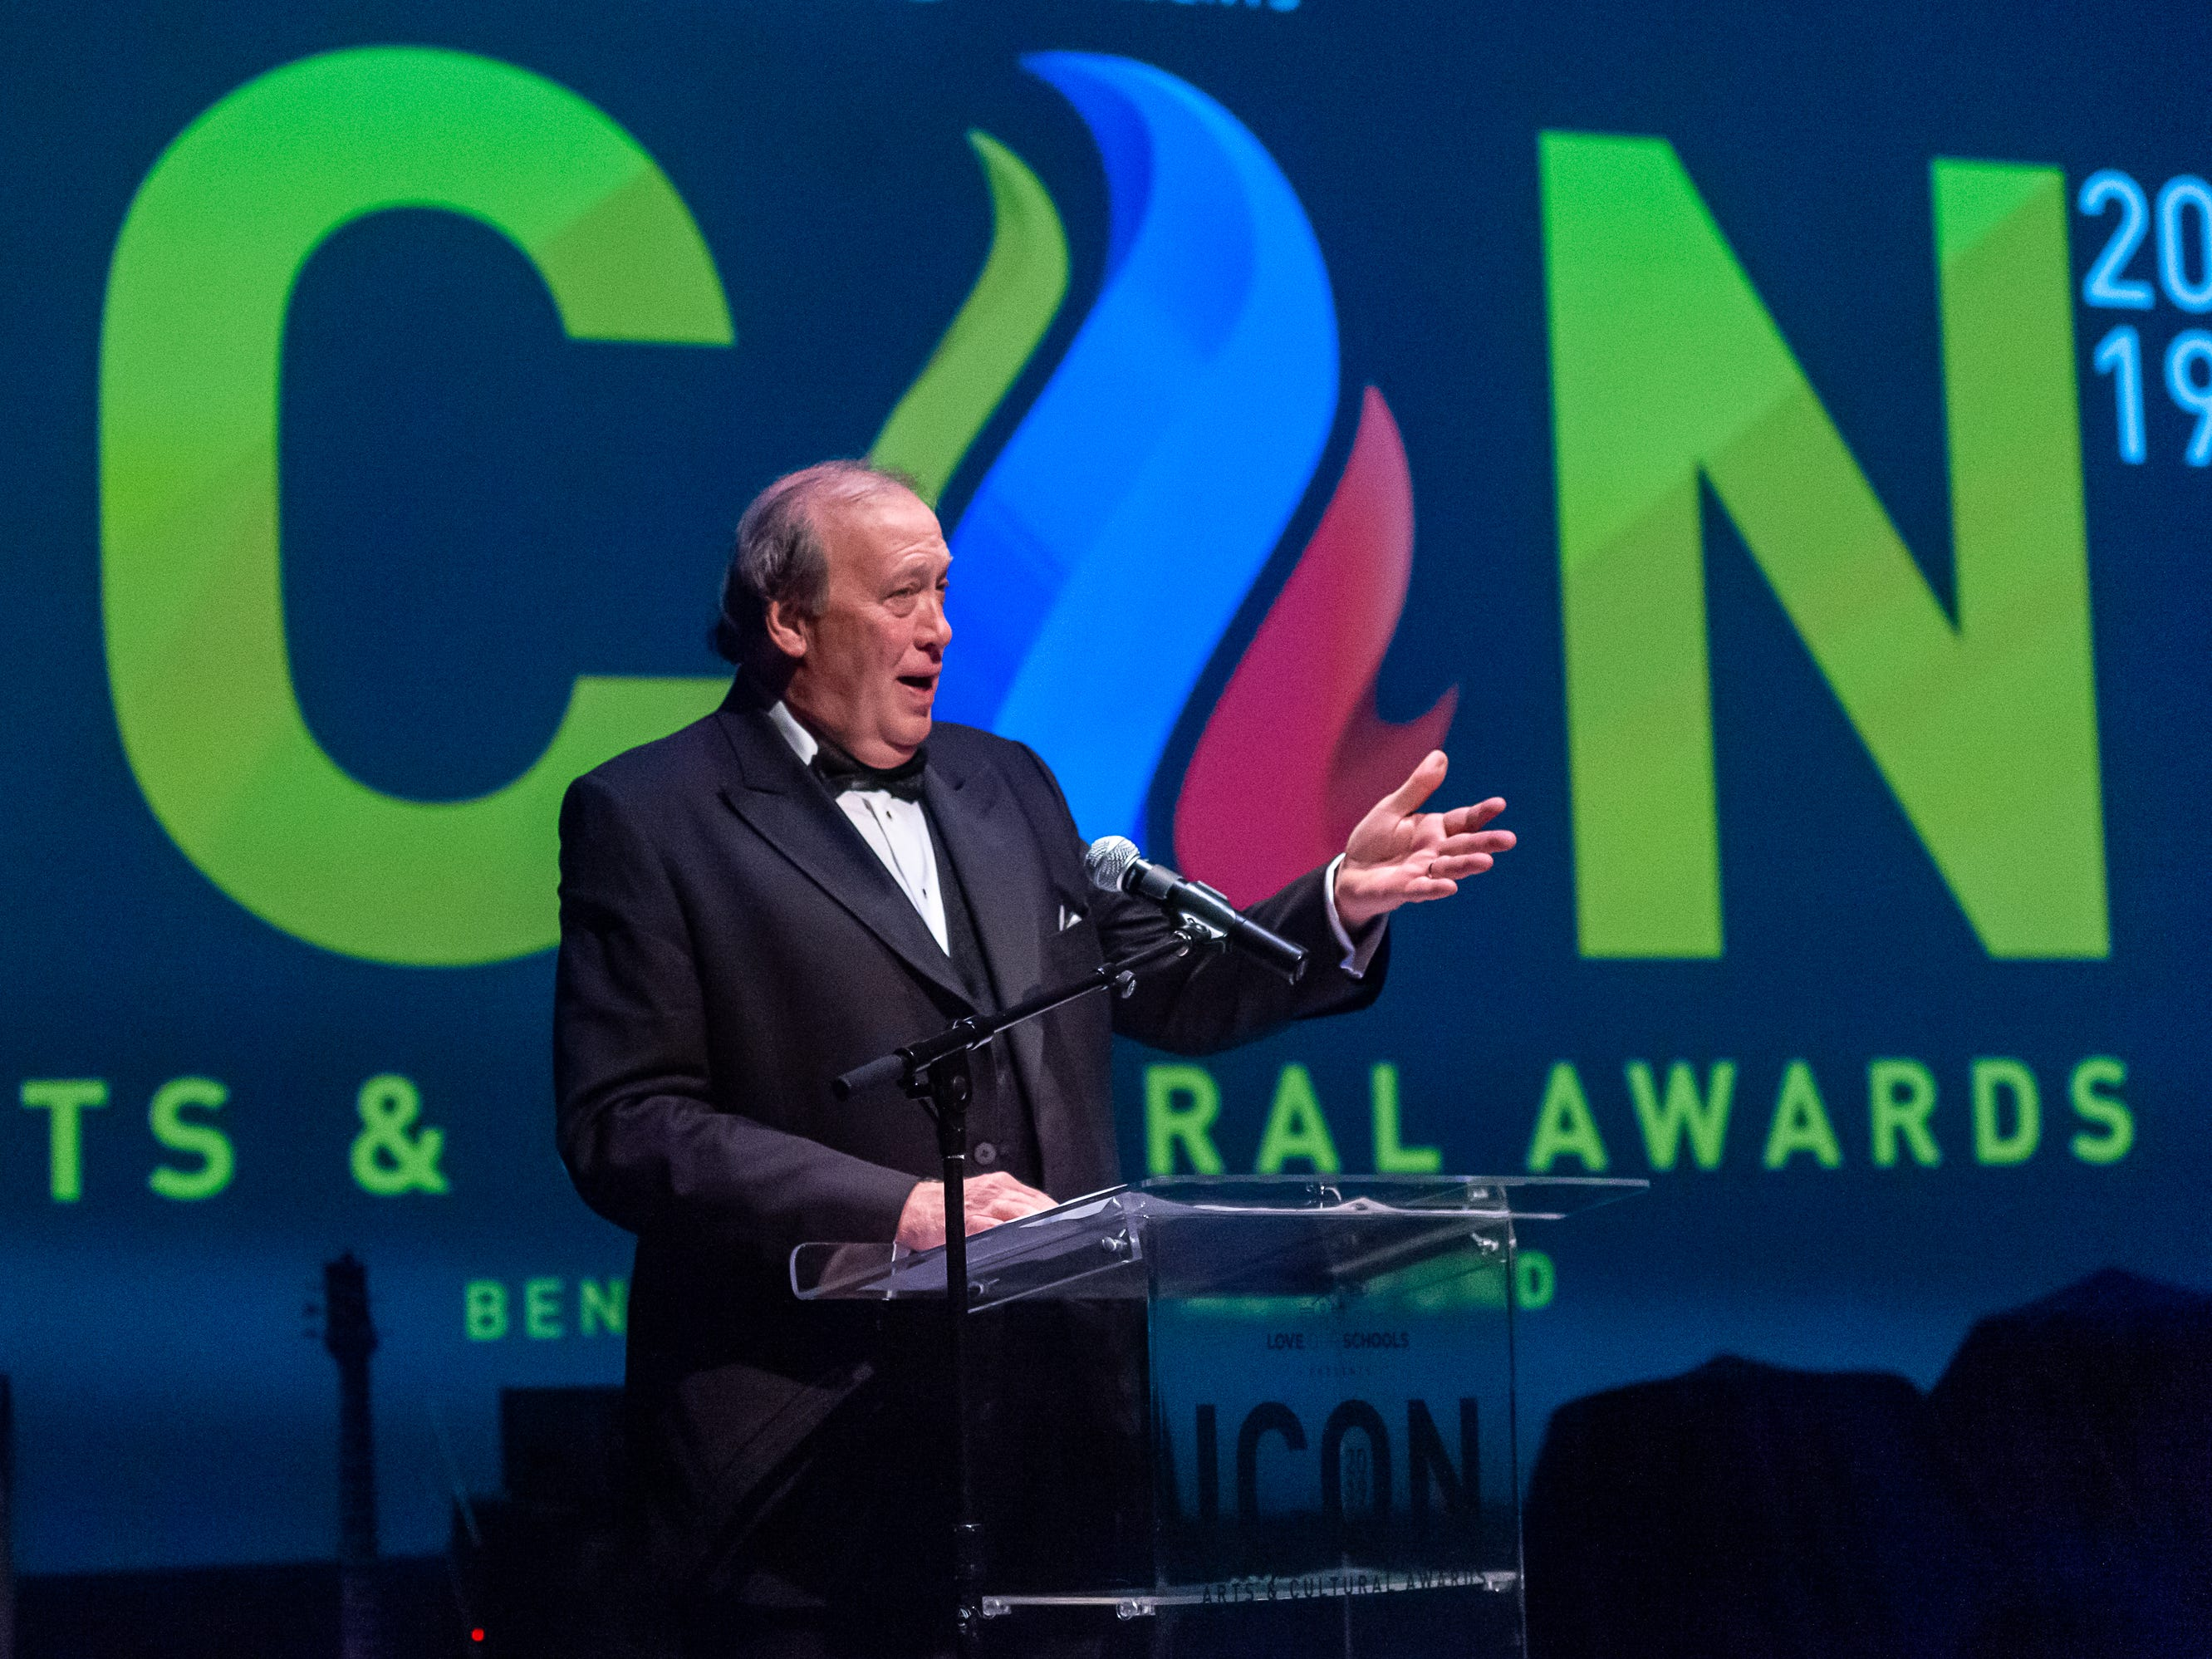 Randy Haynie receives the Patron of the Year Award at The 2019 Icon Arts & Cultural Awards Gala honoring Acadiana's Legends. Thursday, April 11, 2019.